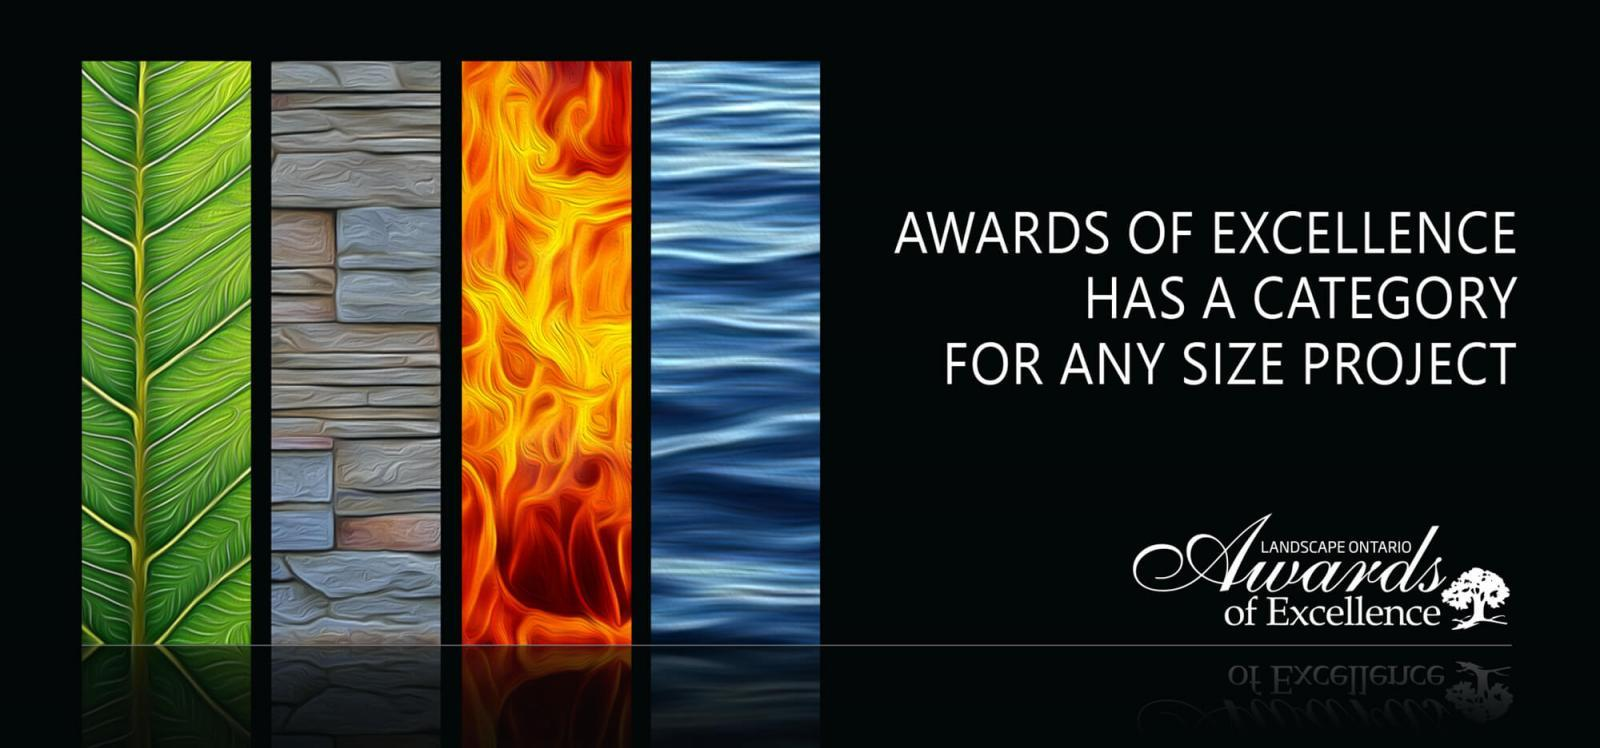 Online entry for this year's awards program opened July 1.